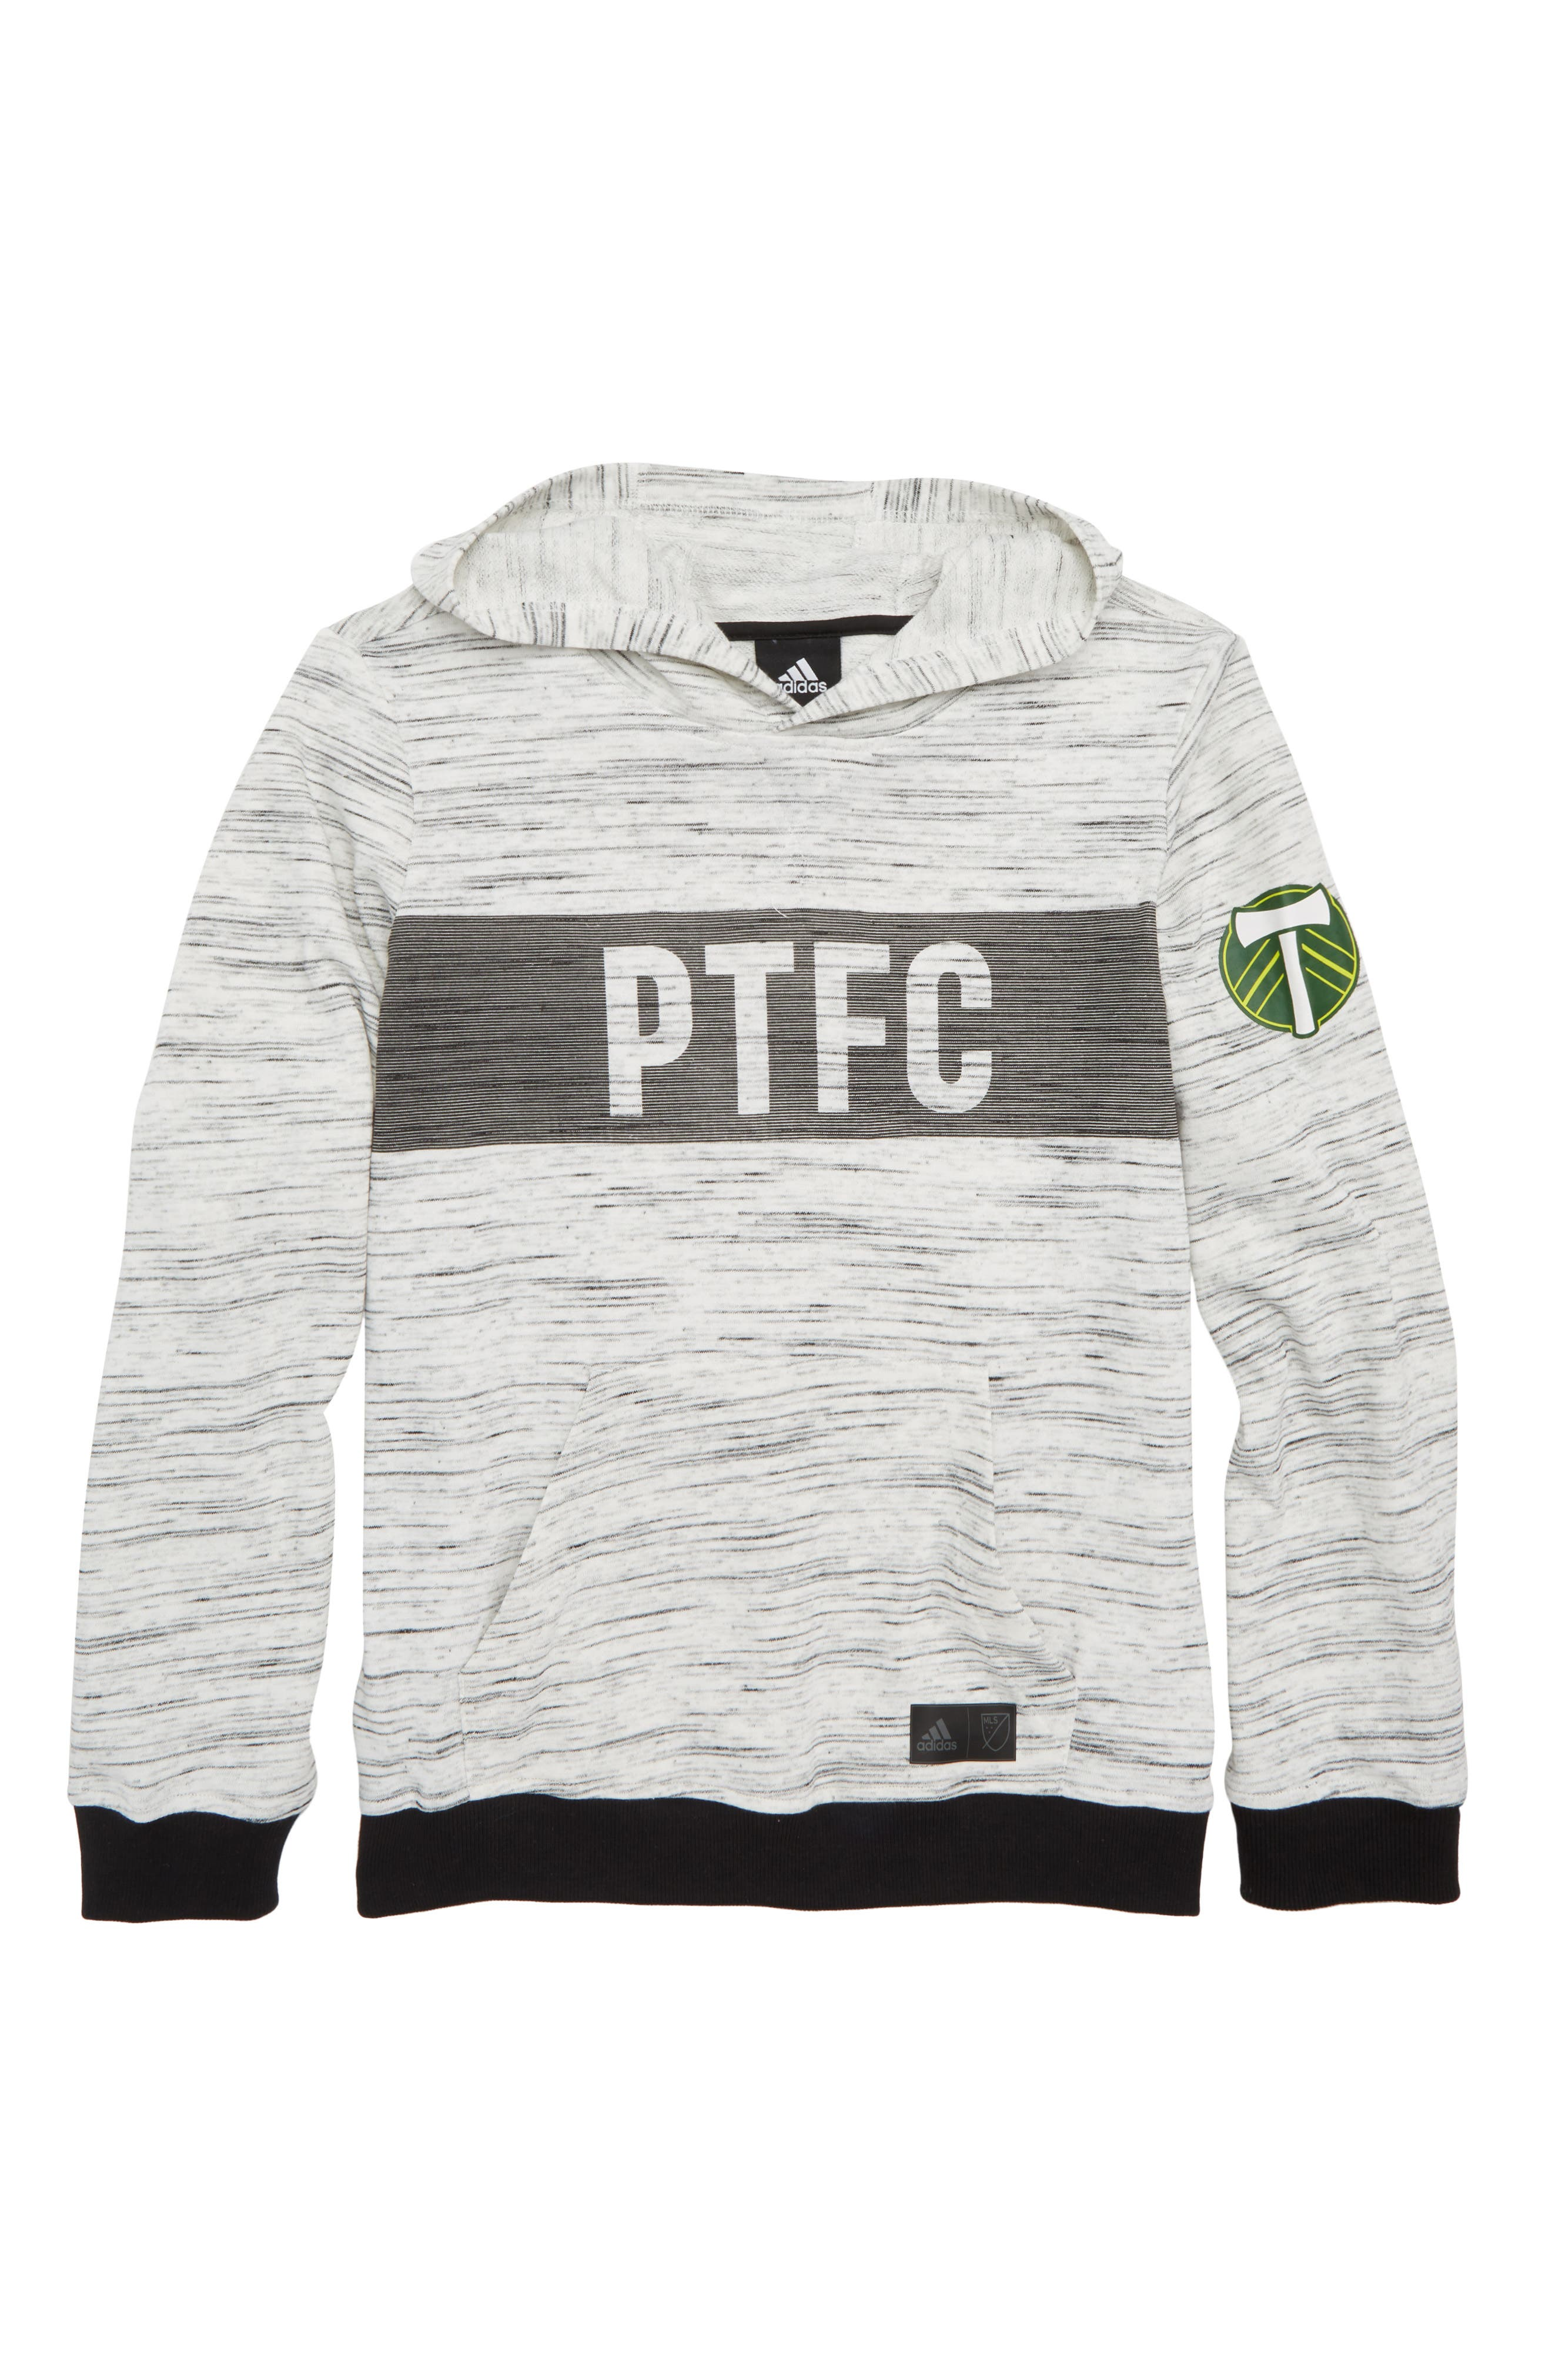 MLS - Portland Timbers Hoodie,                             Main thumbnail 1, color,                             100